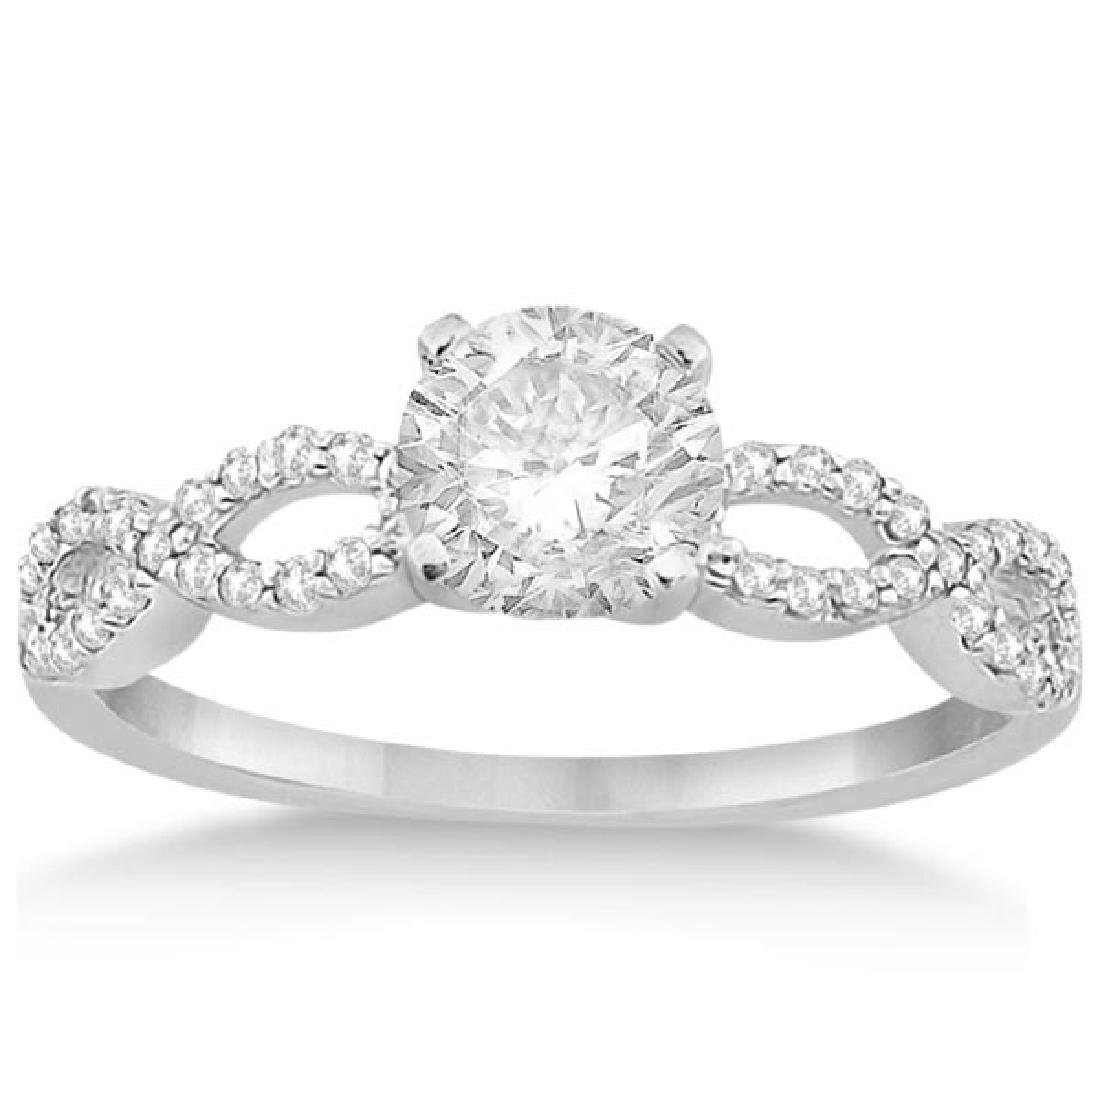 Edwardian Diamond Halo Engagement Ring Floral 14k White